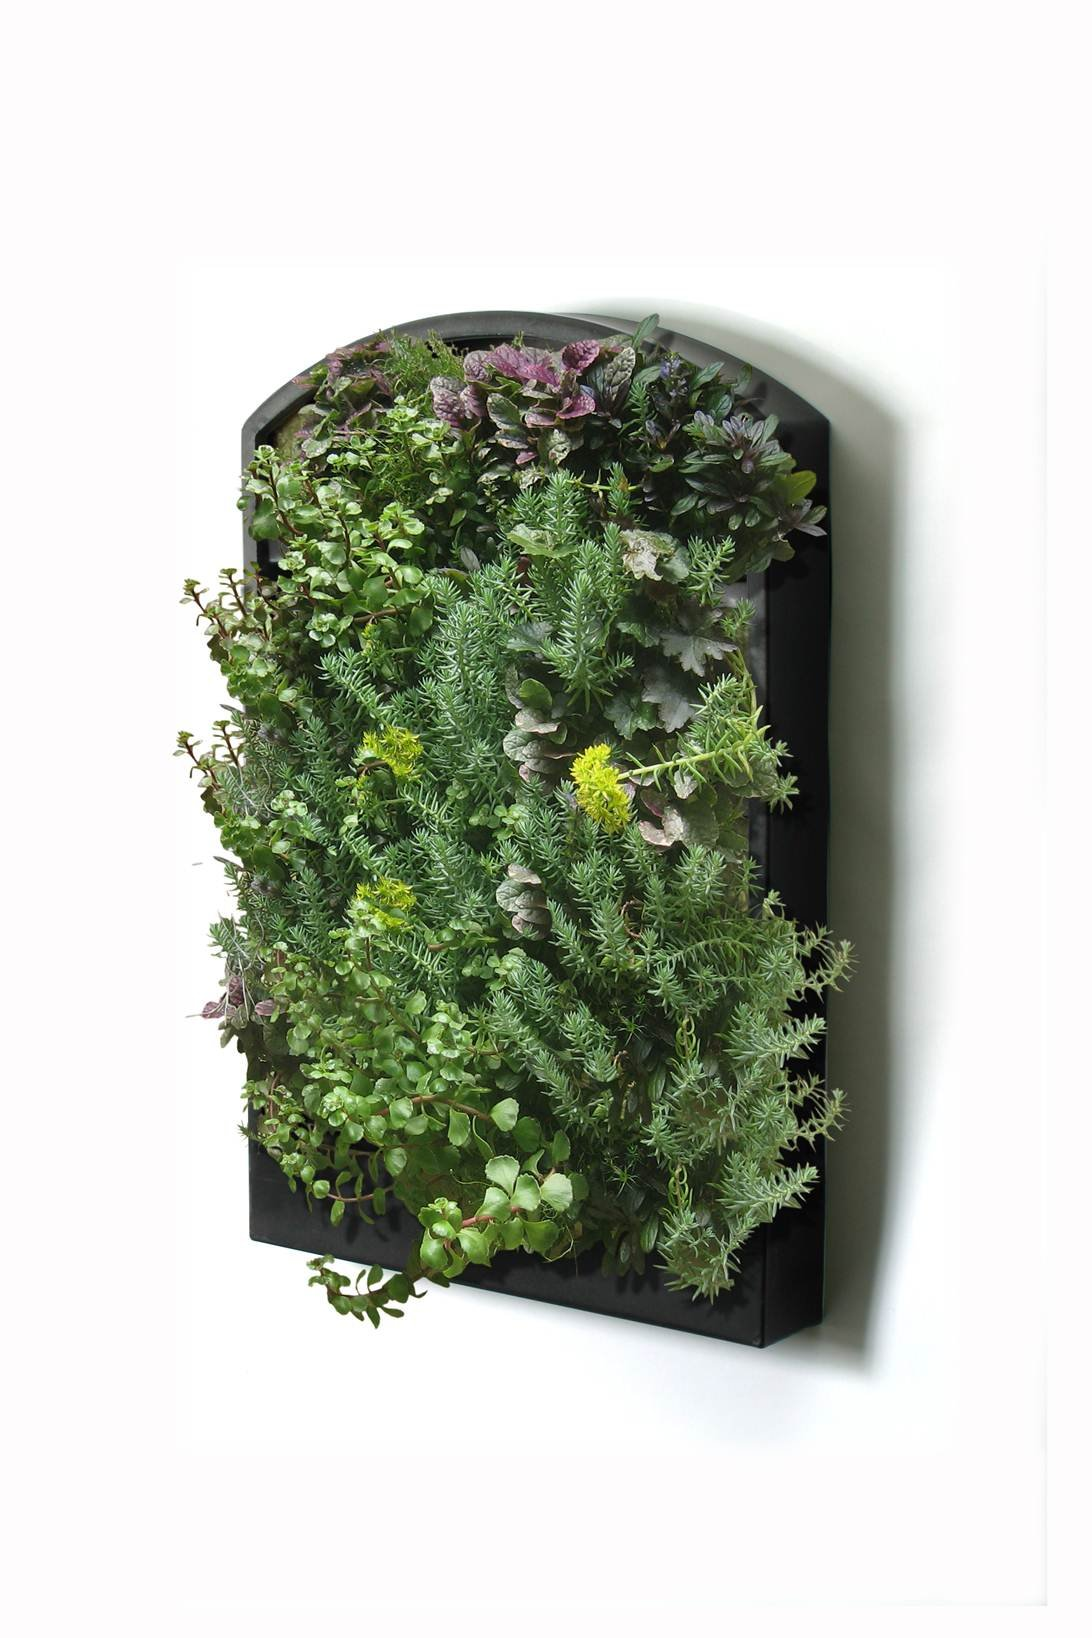 Algreen Greenwall Vertical Planting System with Automated Watering System